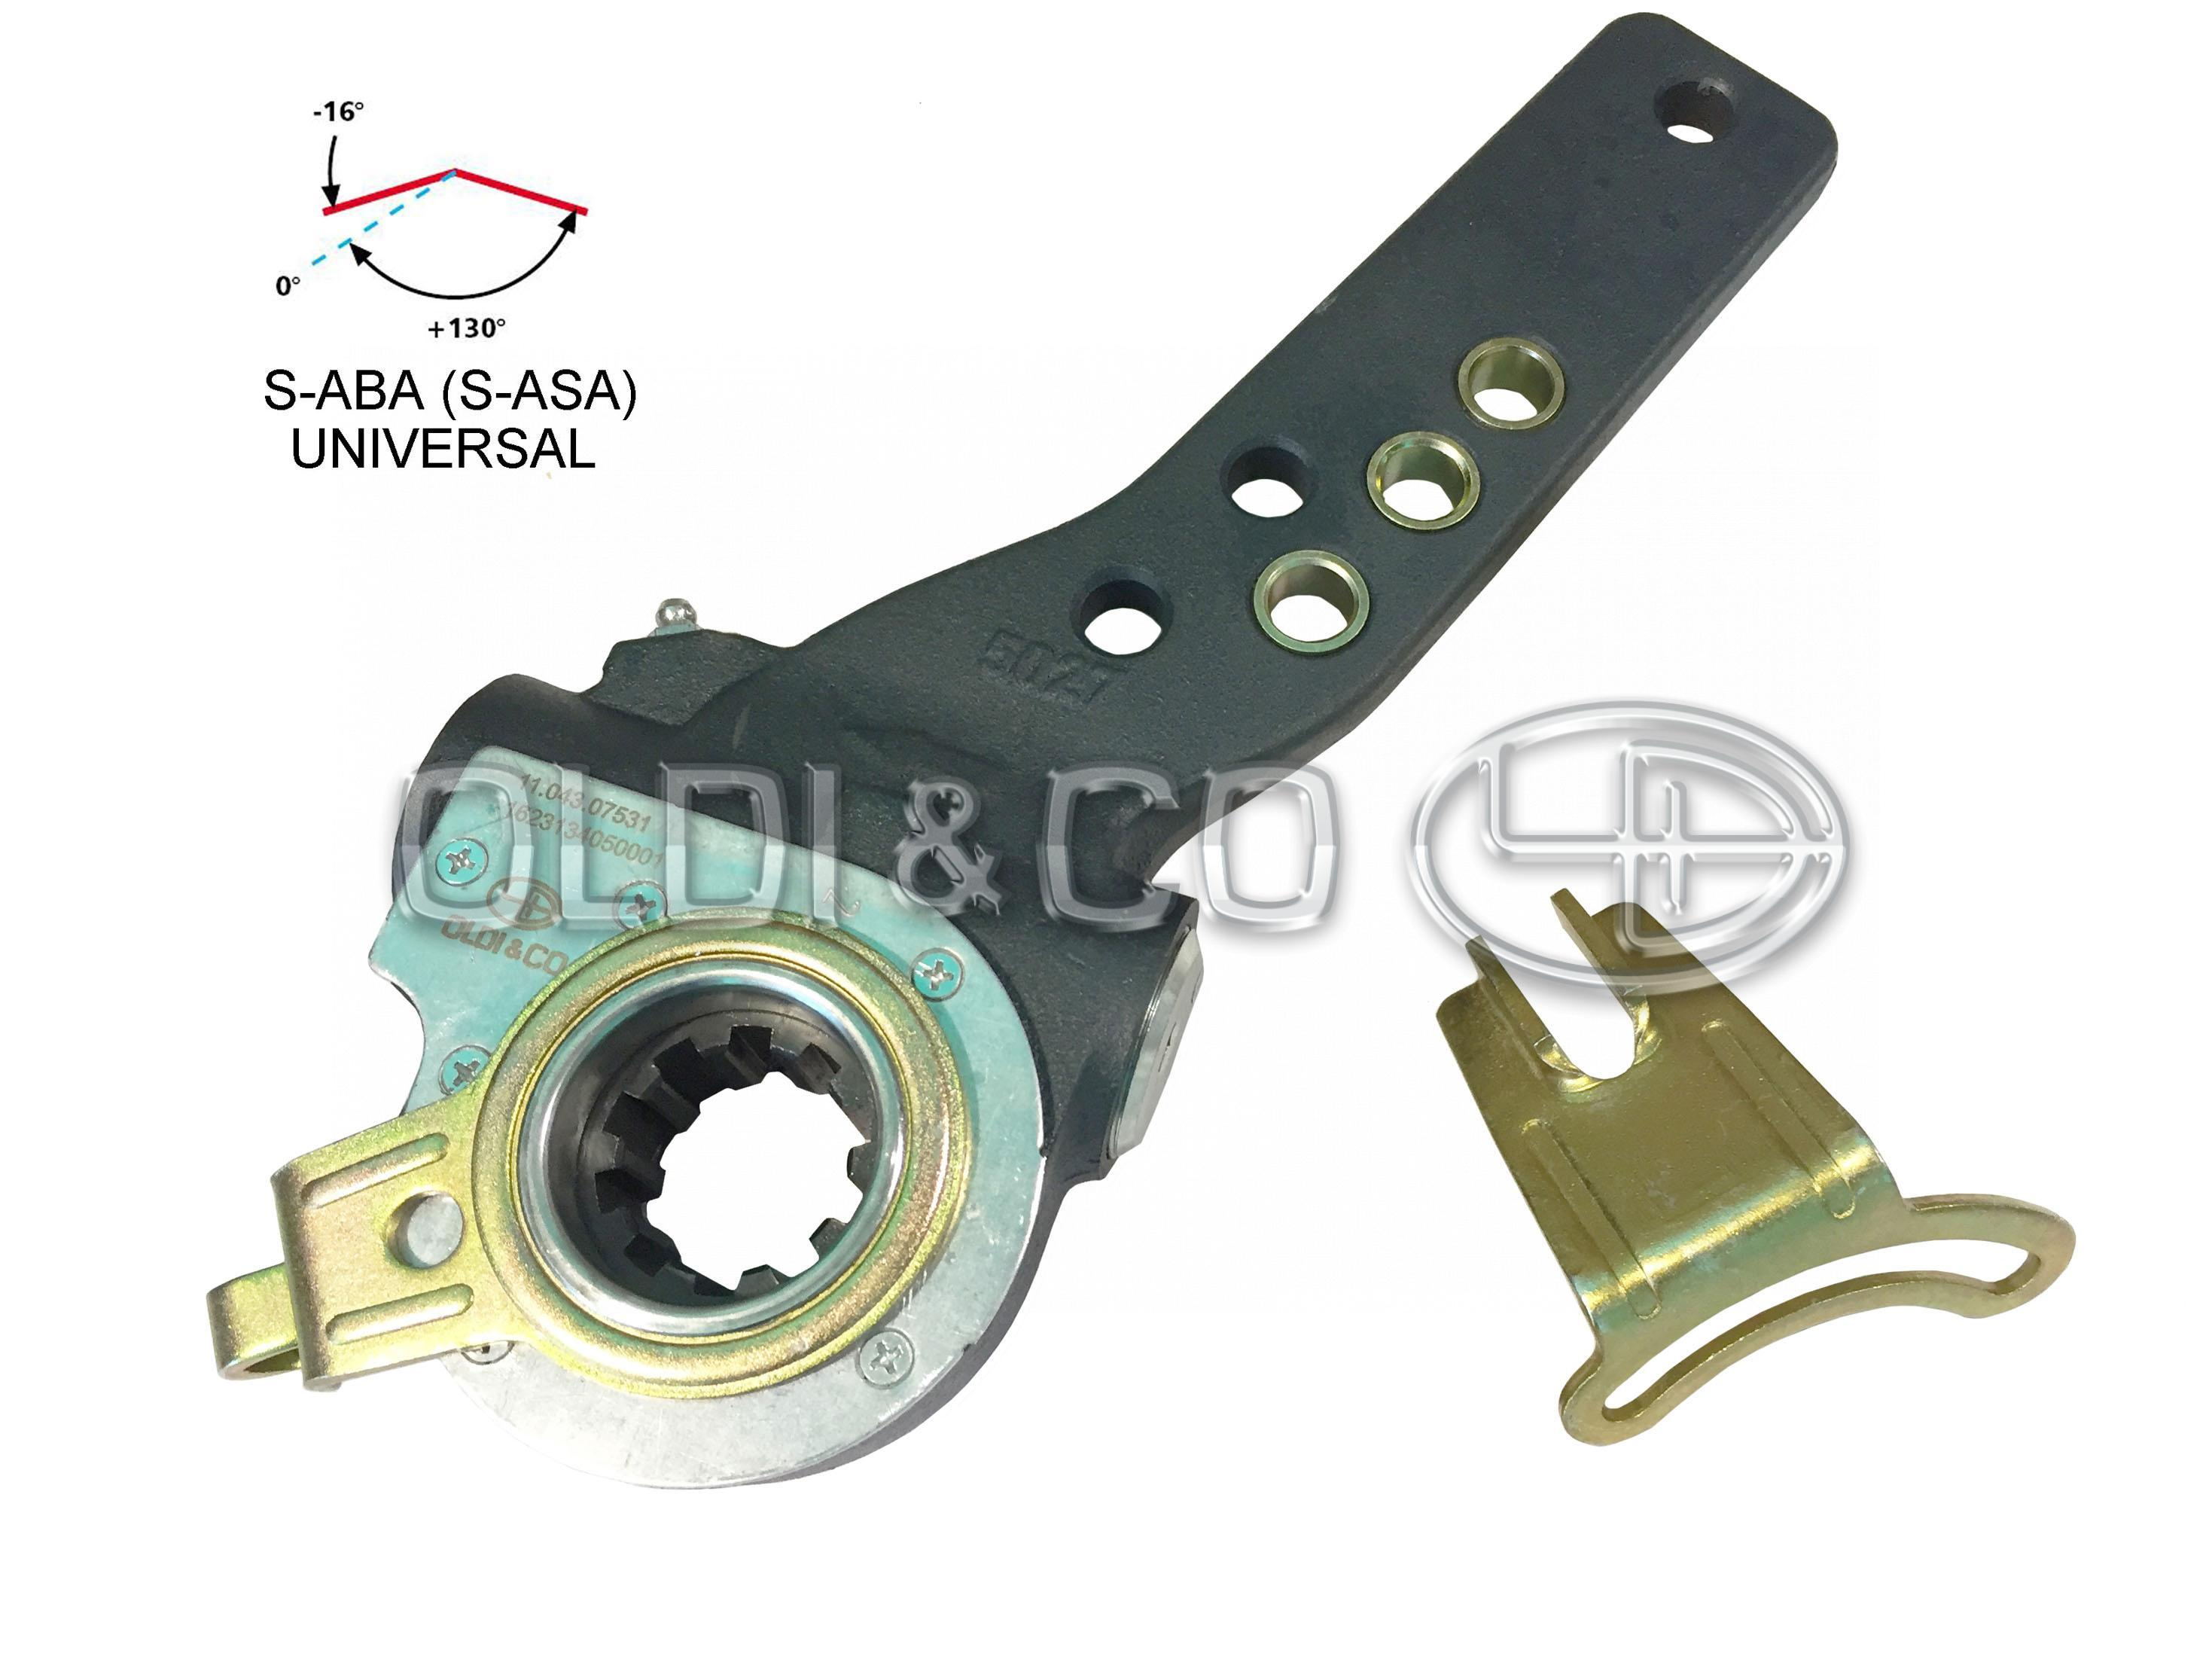 11 043 25061 - Details of brake system - Slack adjuster